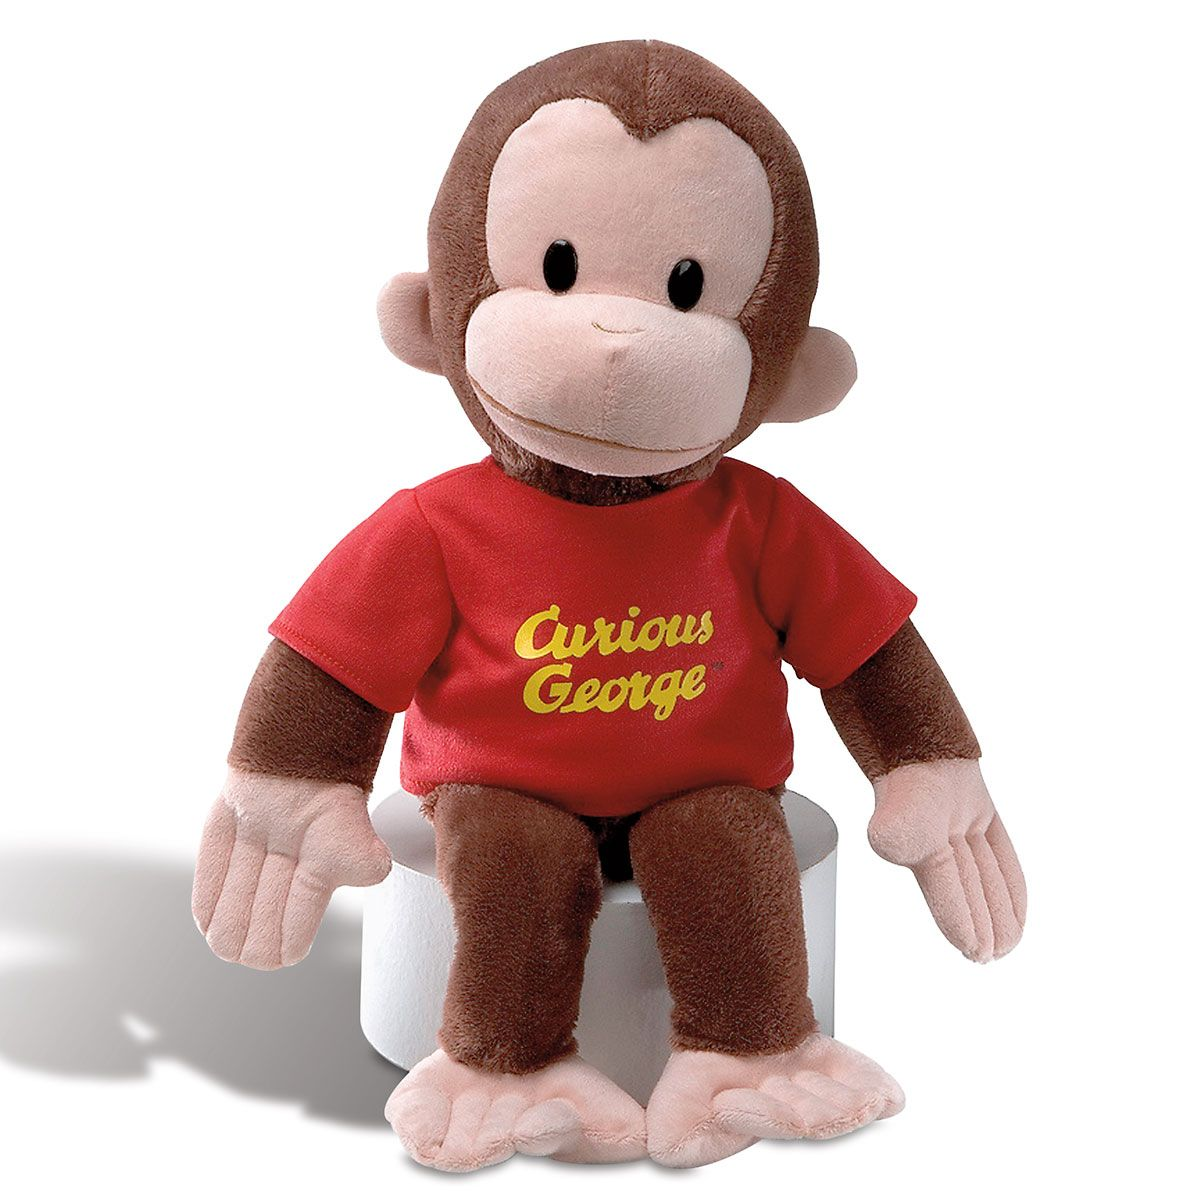 Curious George Plush Toy